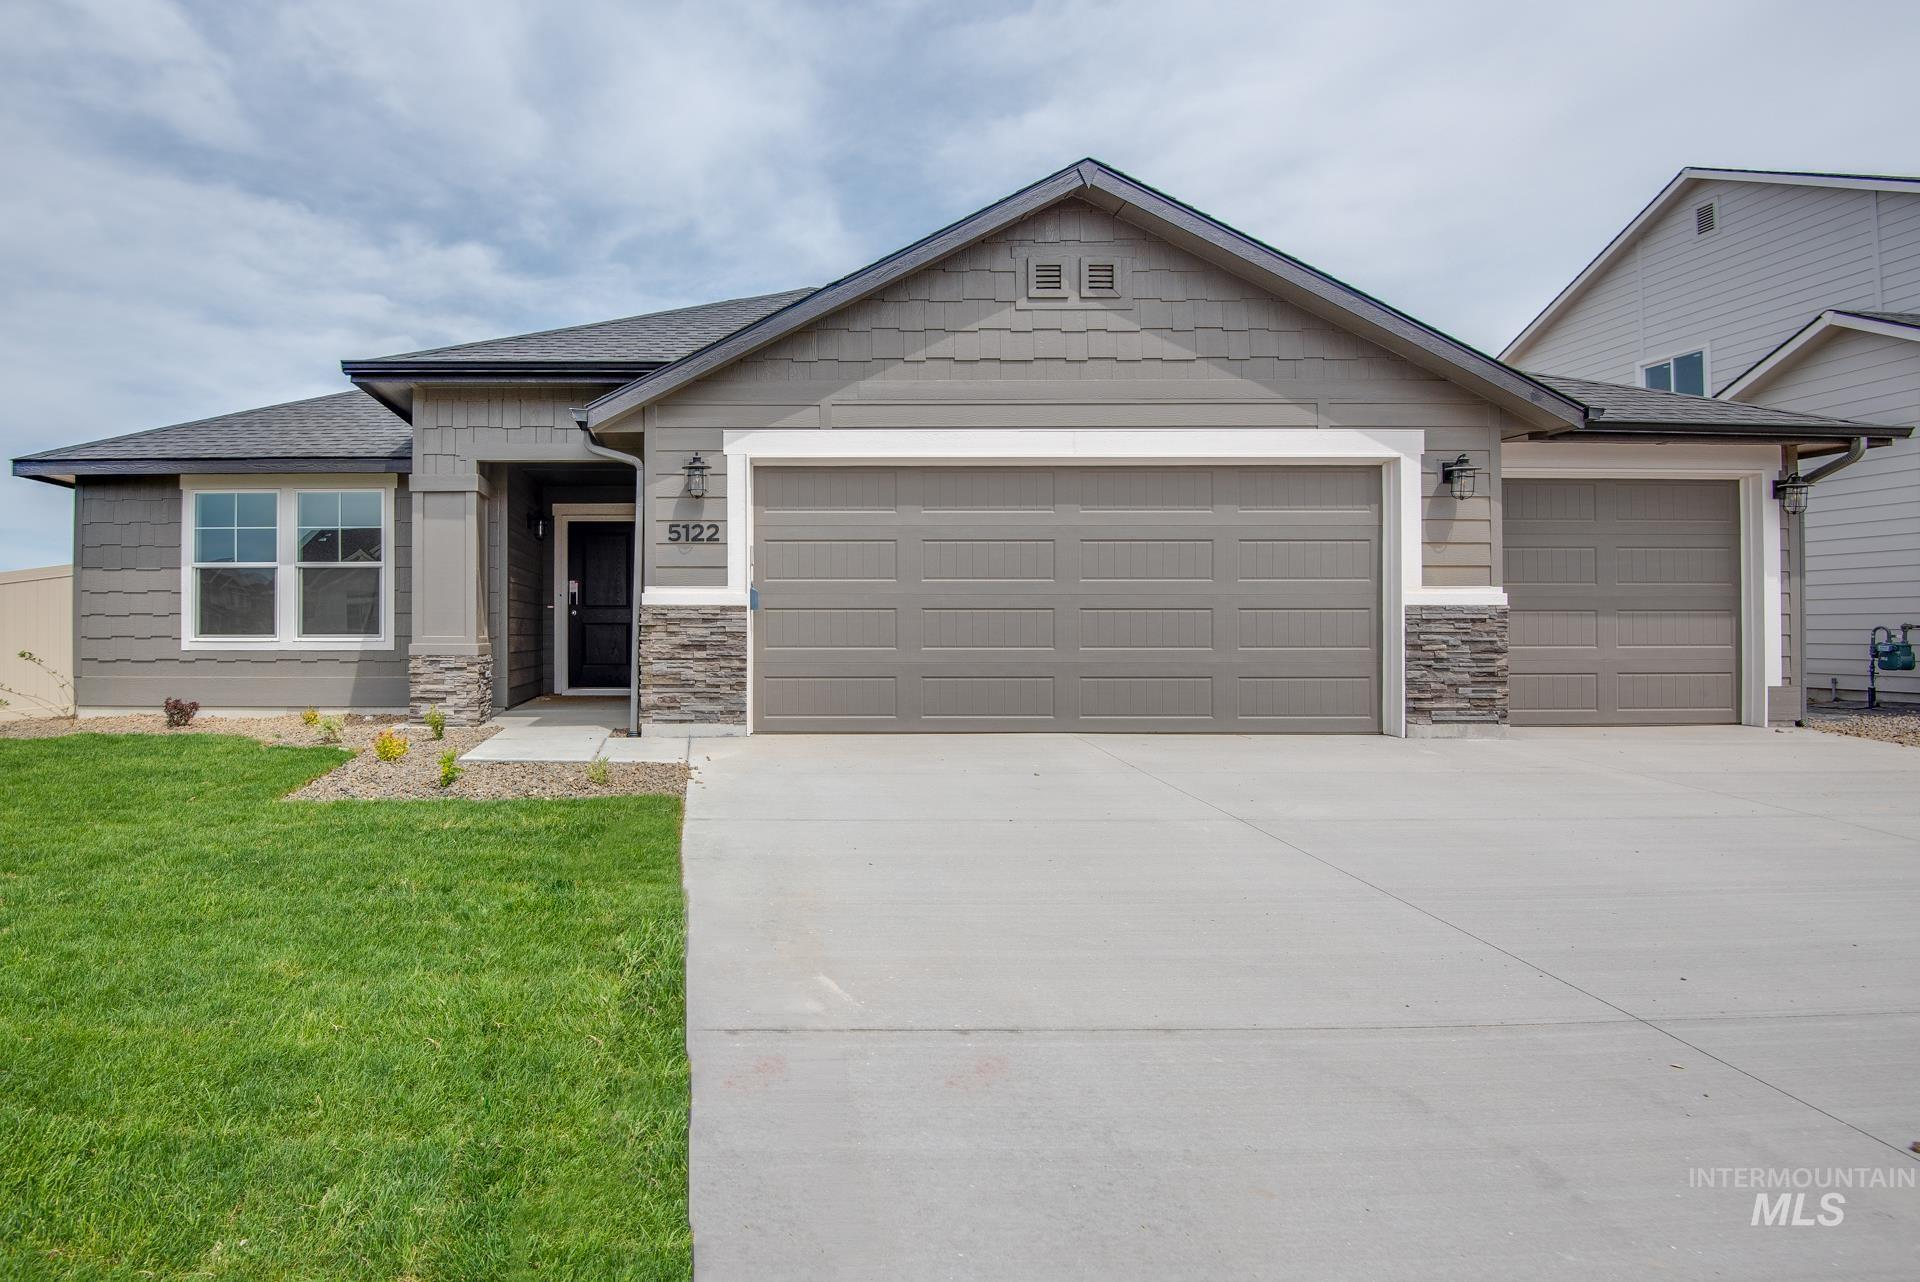 5122 W Sands Basin Dr Property Photo - Meridian, ID real estate listing